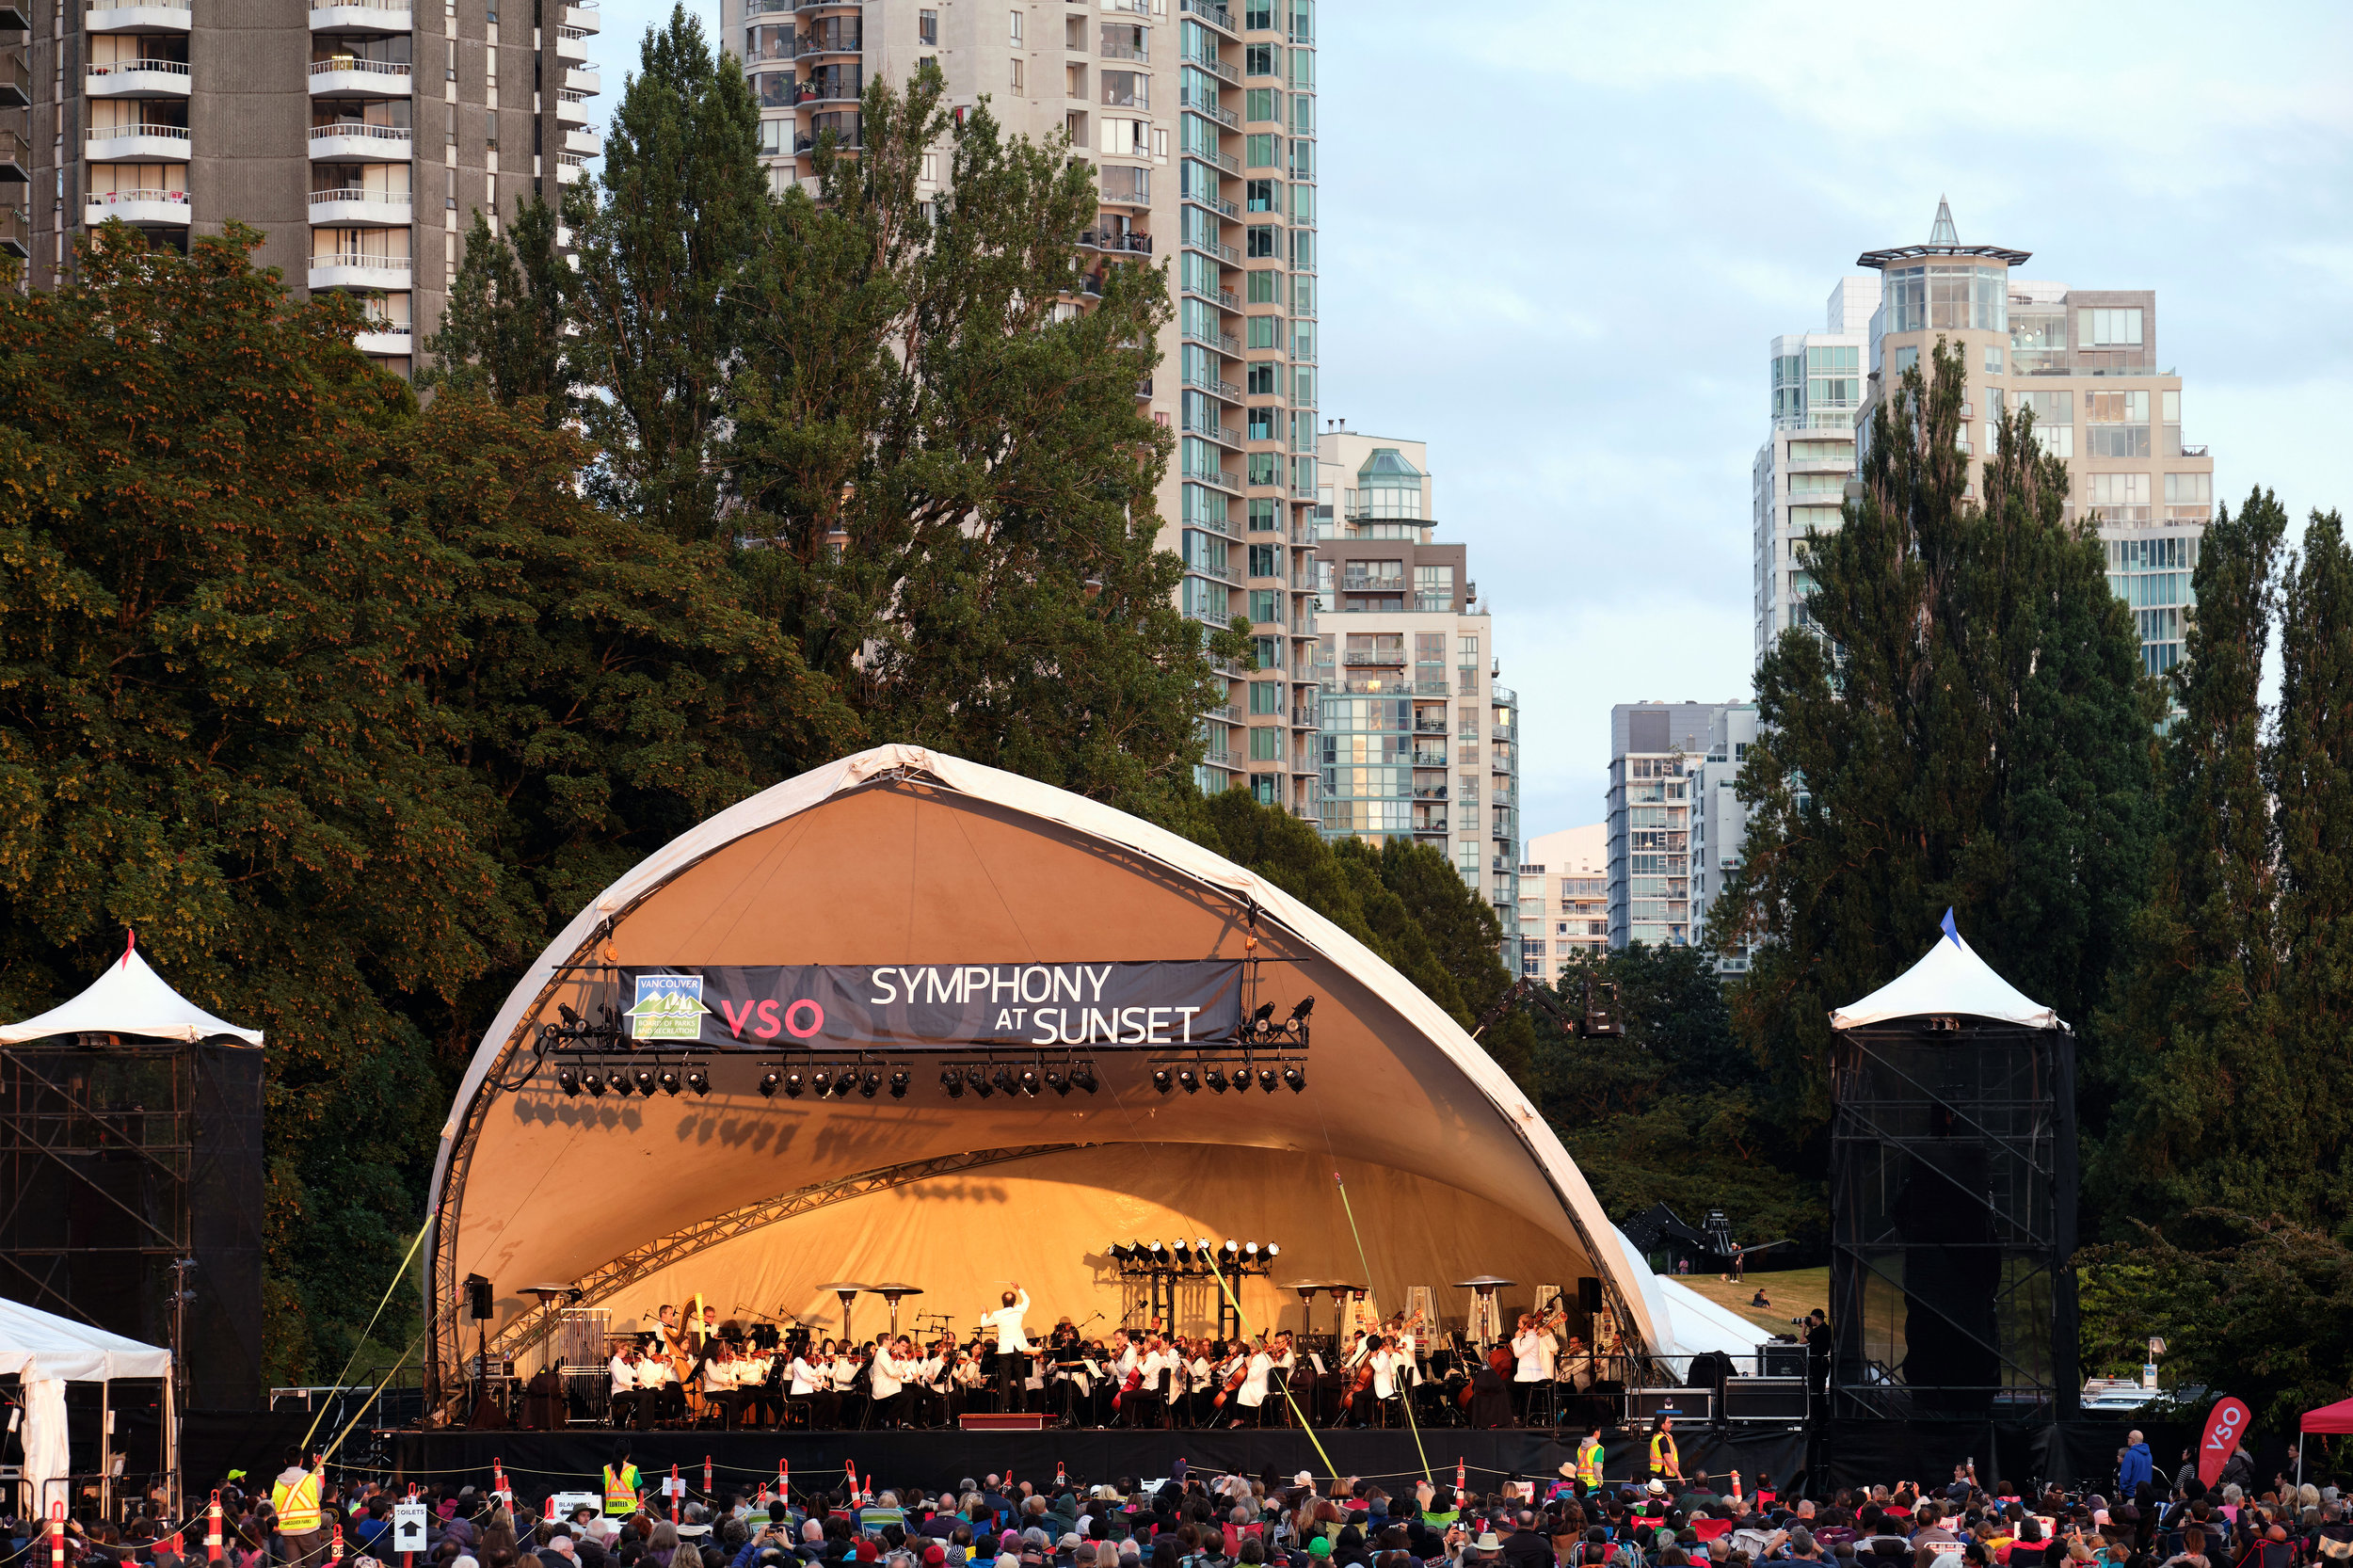 Symphony at Sunset in Vancouver, BC, Canada